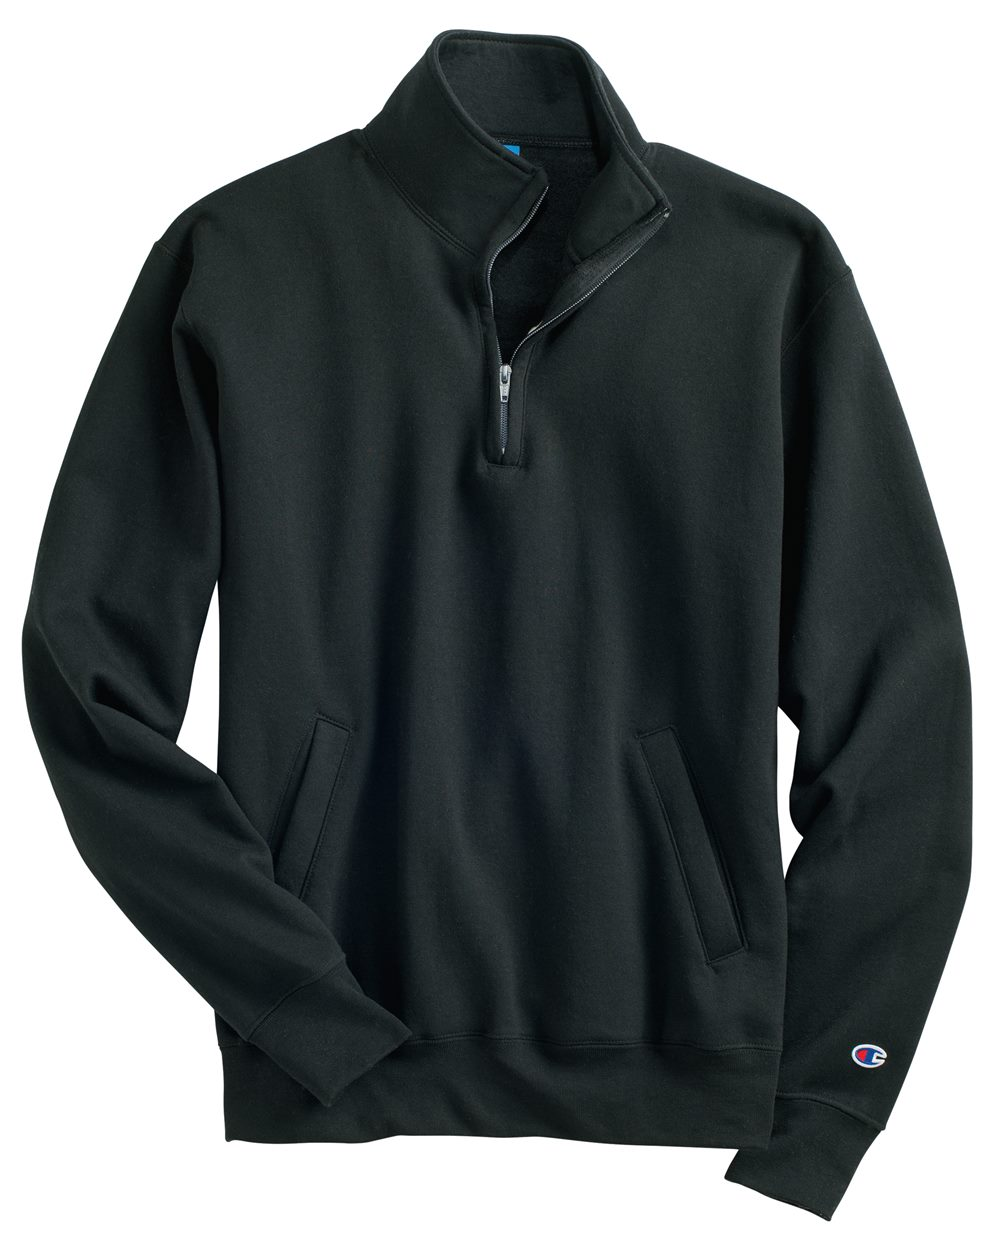 d0dc43b3adc Champion - Double Dry Eco 1 4 Zip Pullover - S400 - S-3XL - 3 Colors